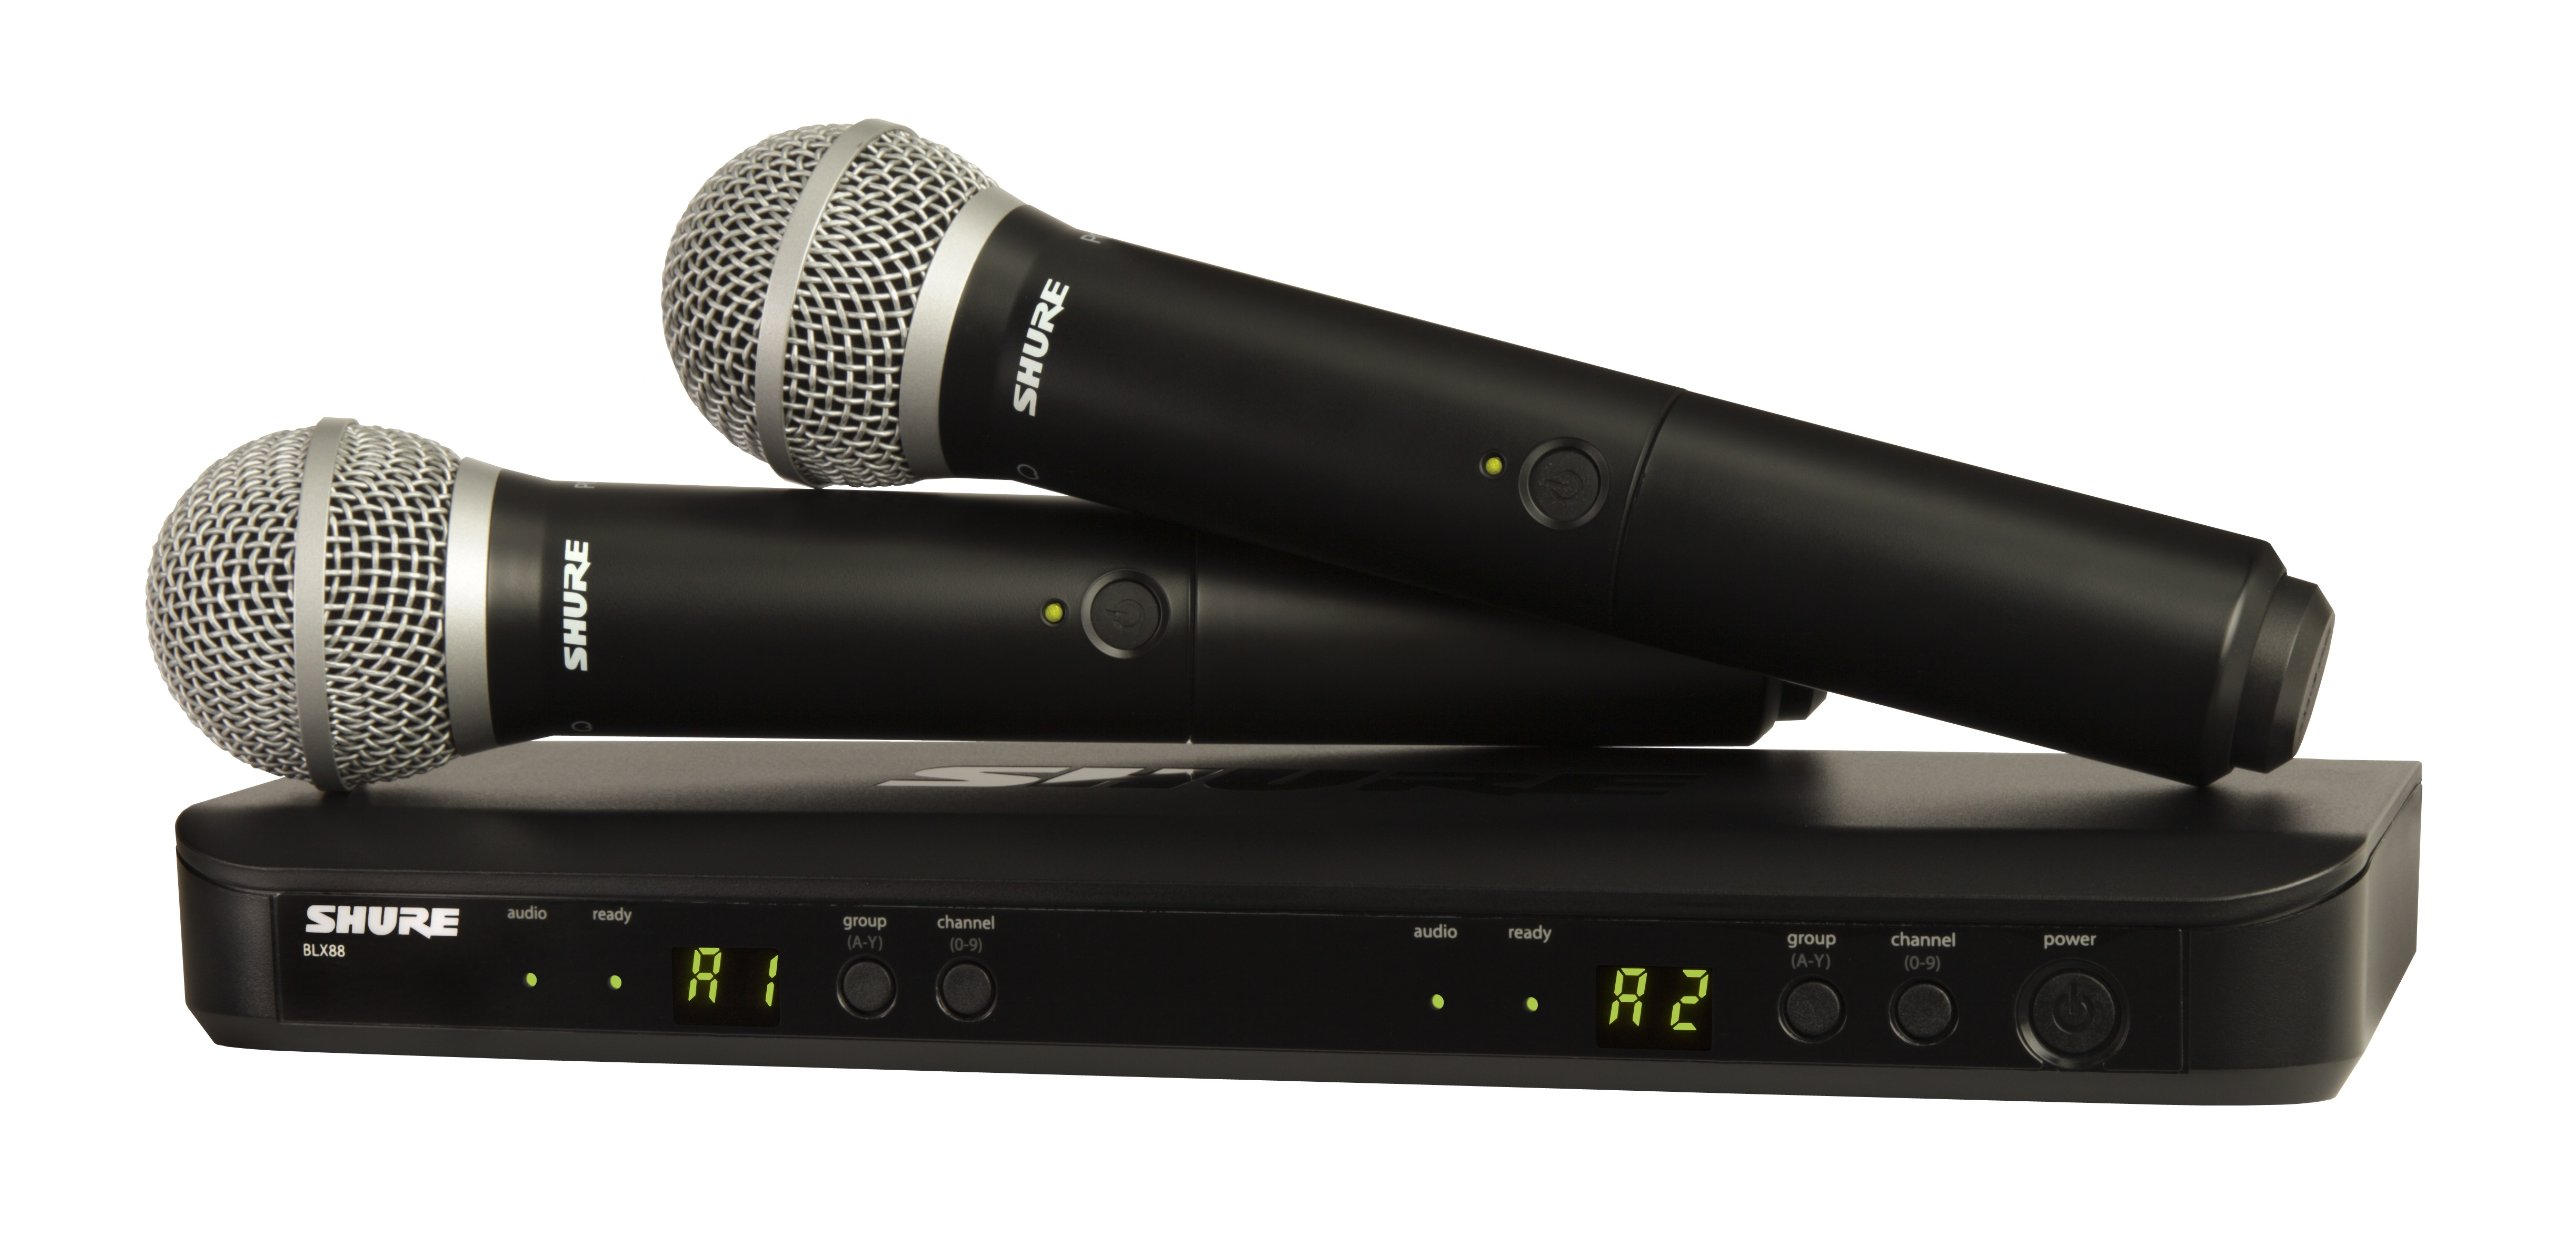 Shure BLX288/PG58 Dual Channel Handheld Wireless System with 2 PG58 Vocal Microphones, J10 by Shure